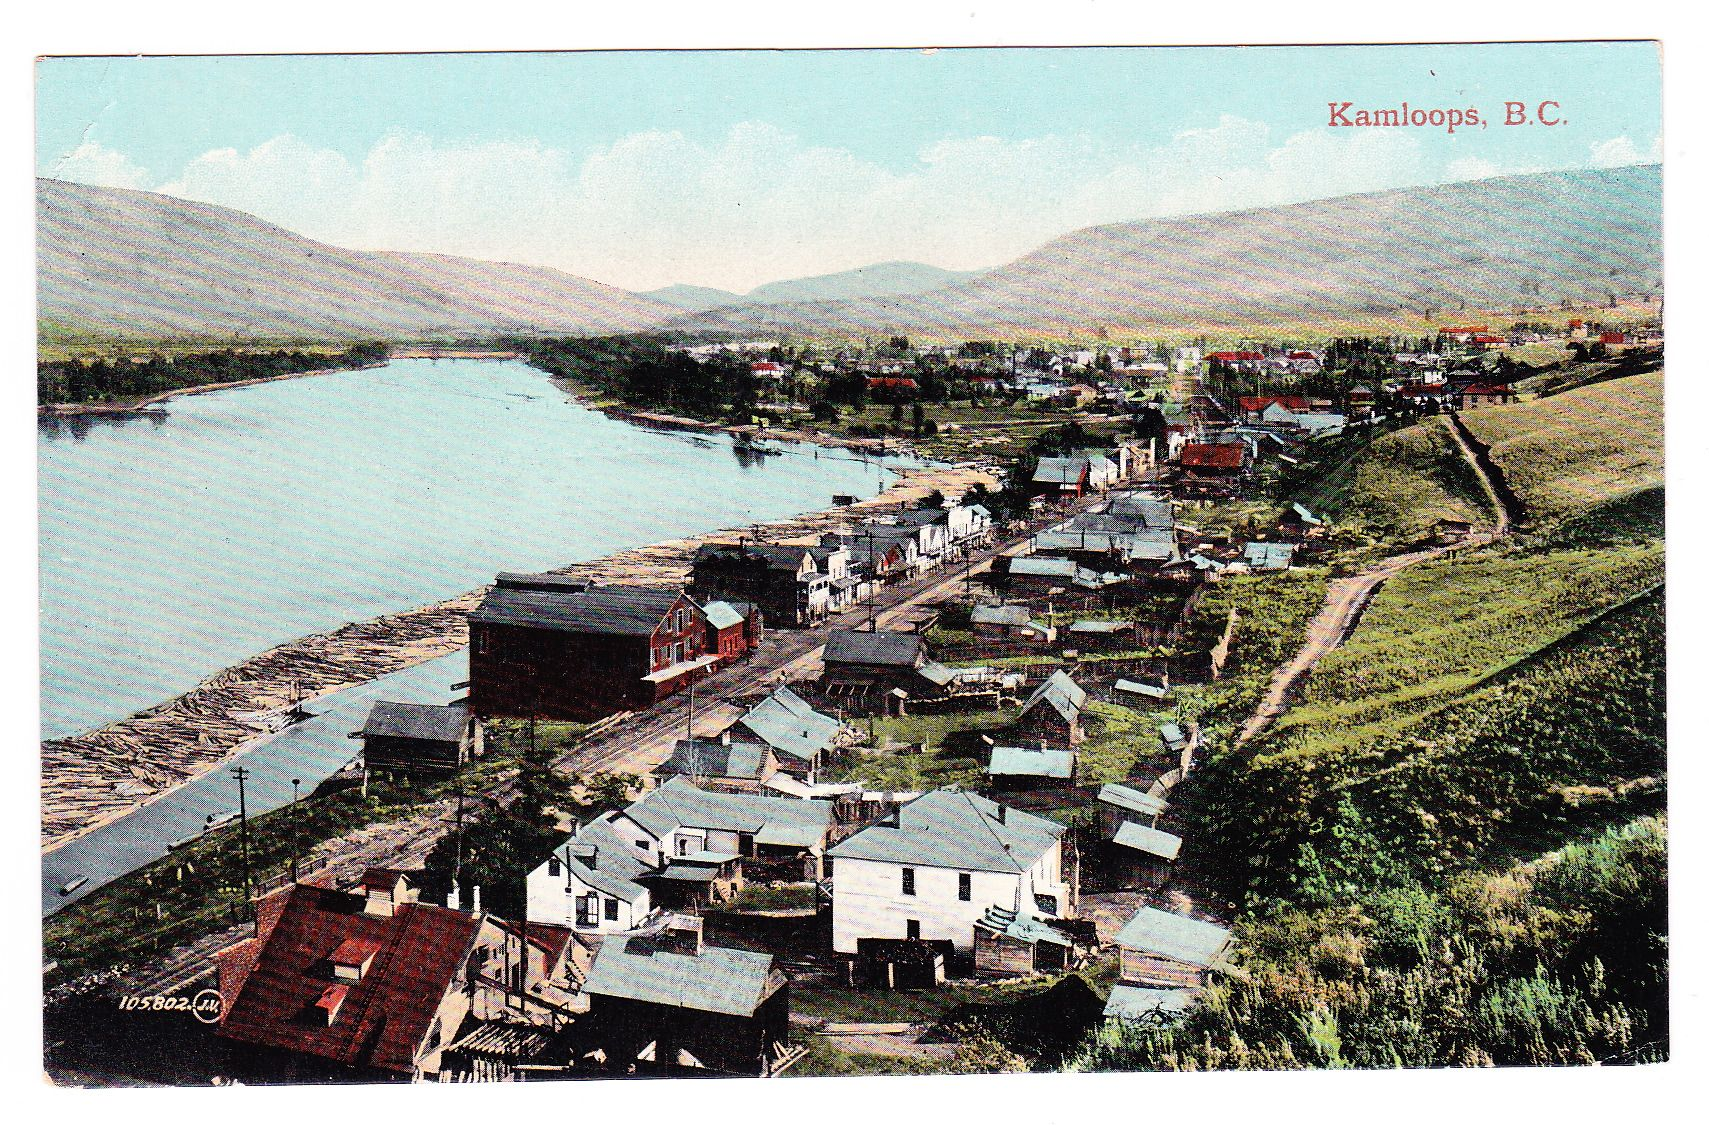 KAMLOOPS, B.C. A postcard, showing the CPR line running into Kamloops with the Thompson River to the left. Card is published by Valentine & Sons c.1900s.